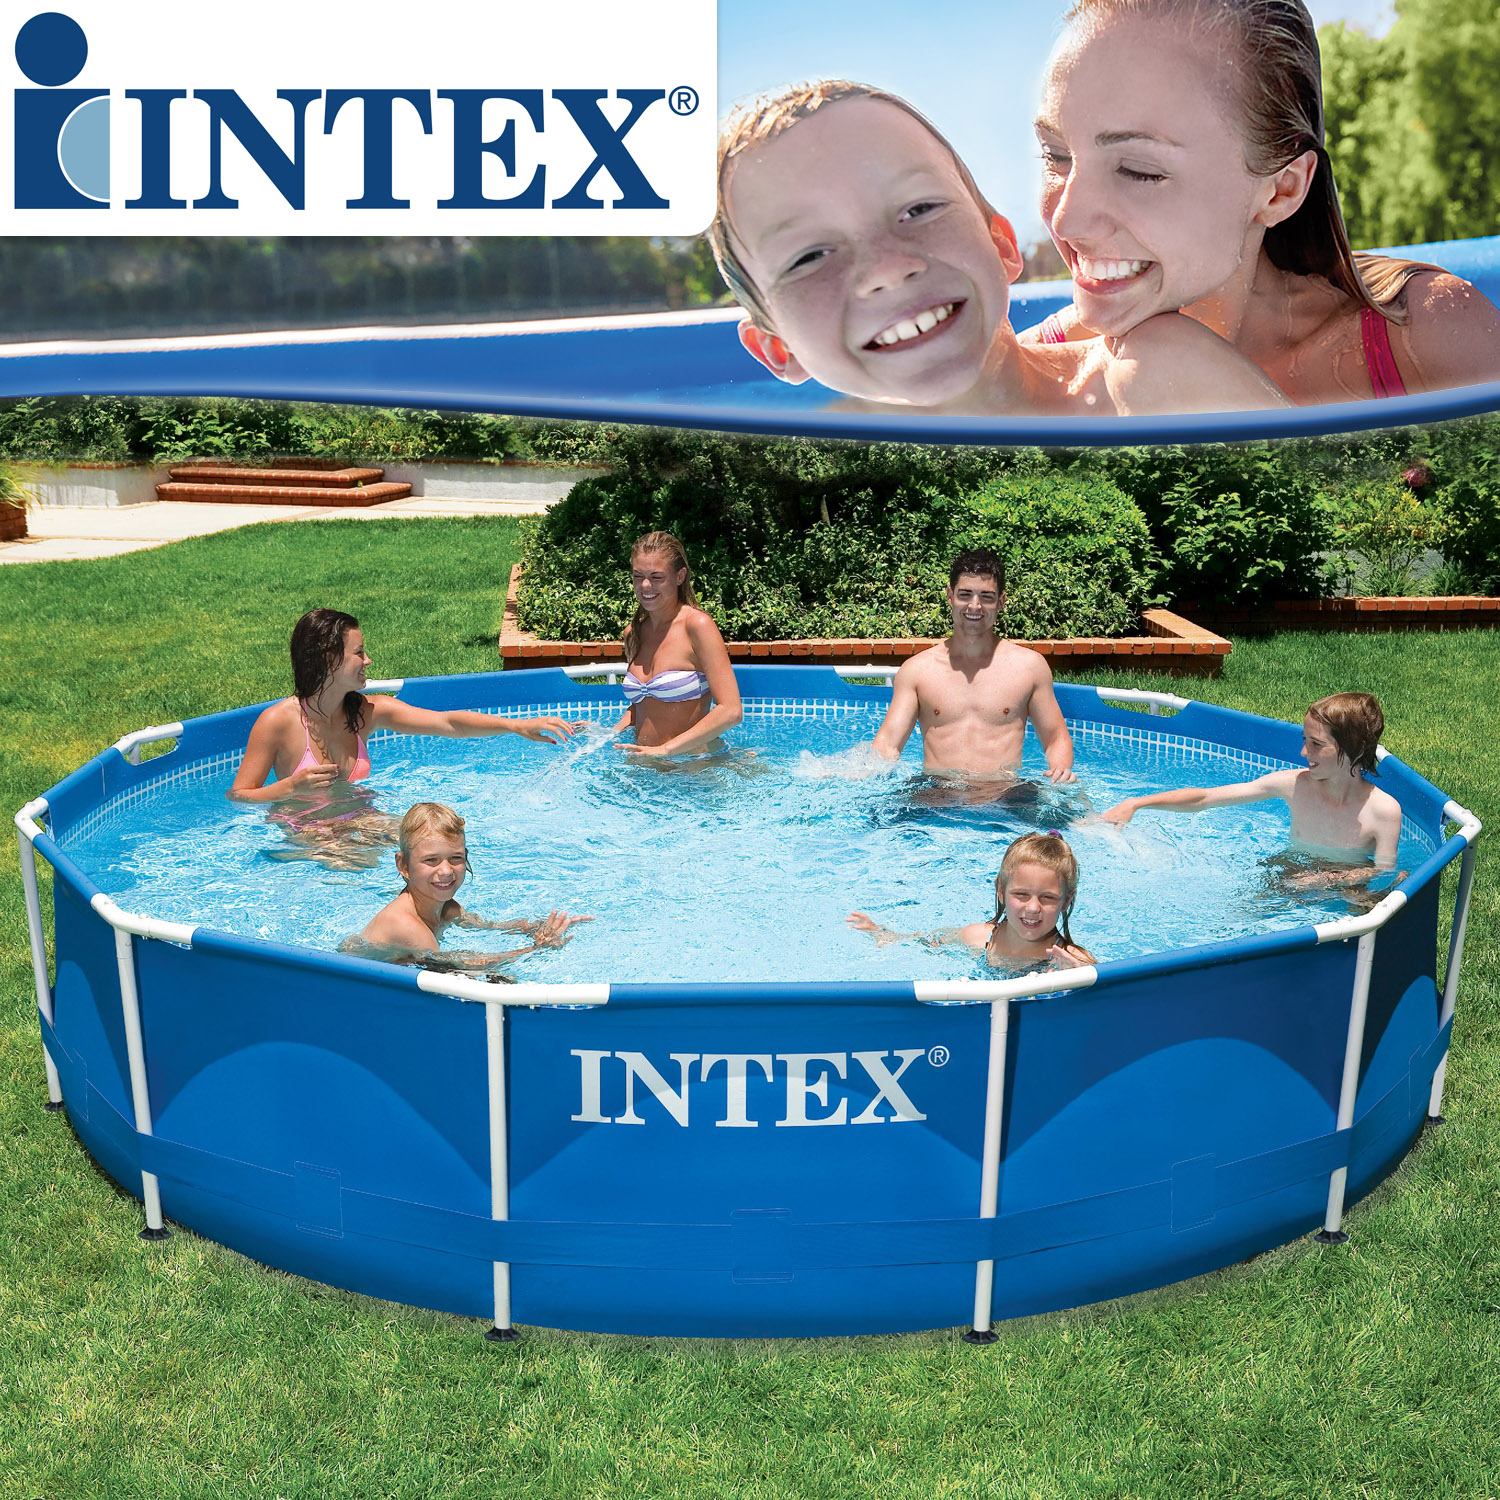 Intex 366x76 cm frame pool set rondo - Swimming pool stahlwand ...